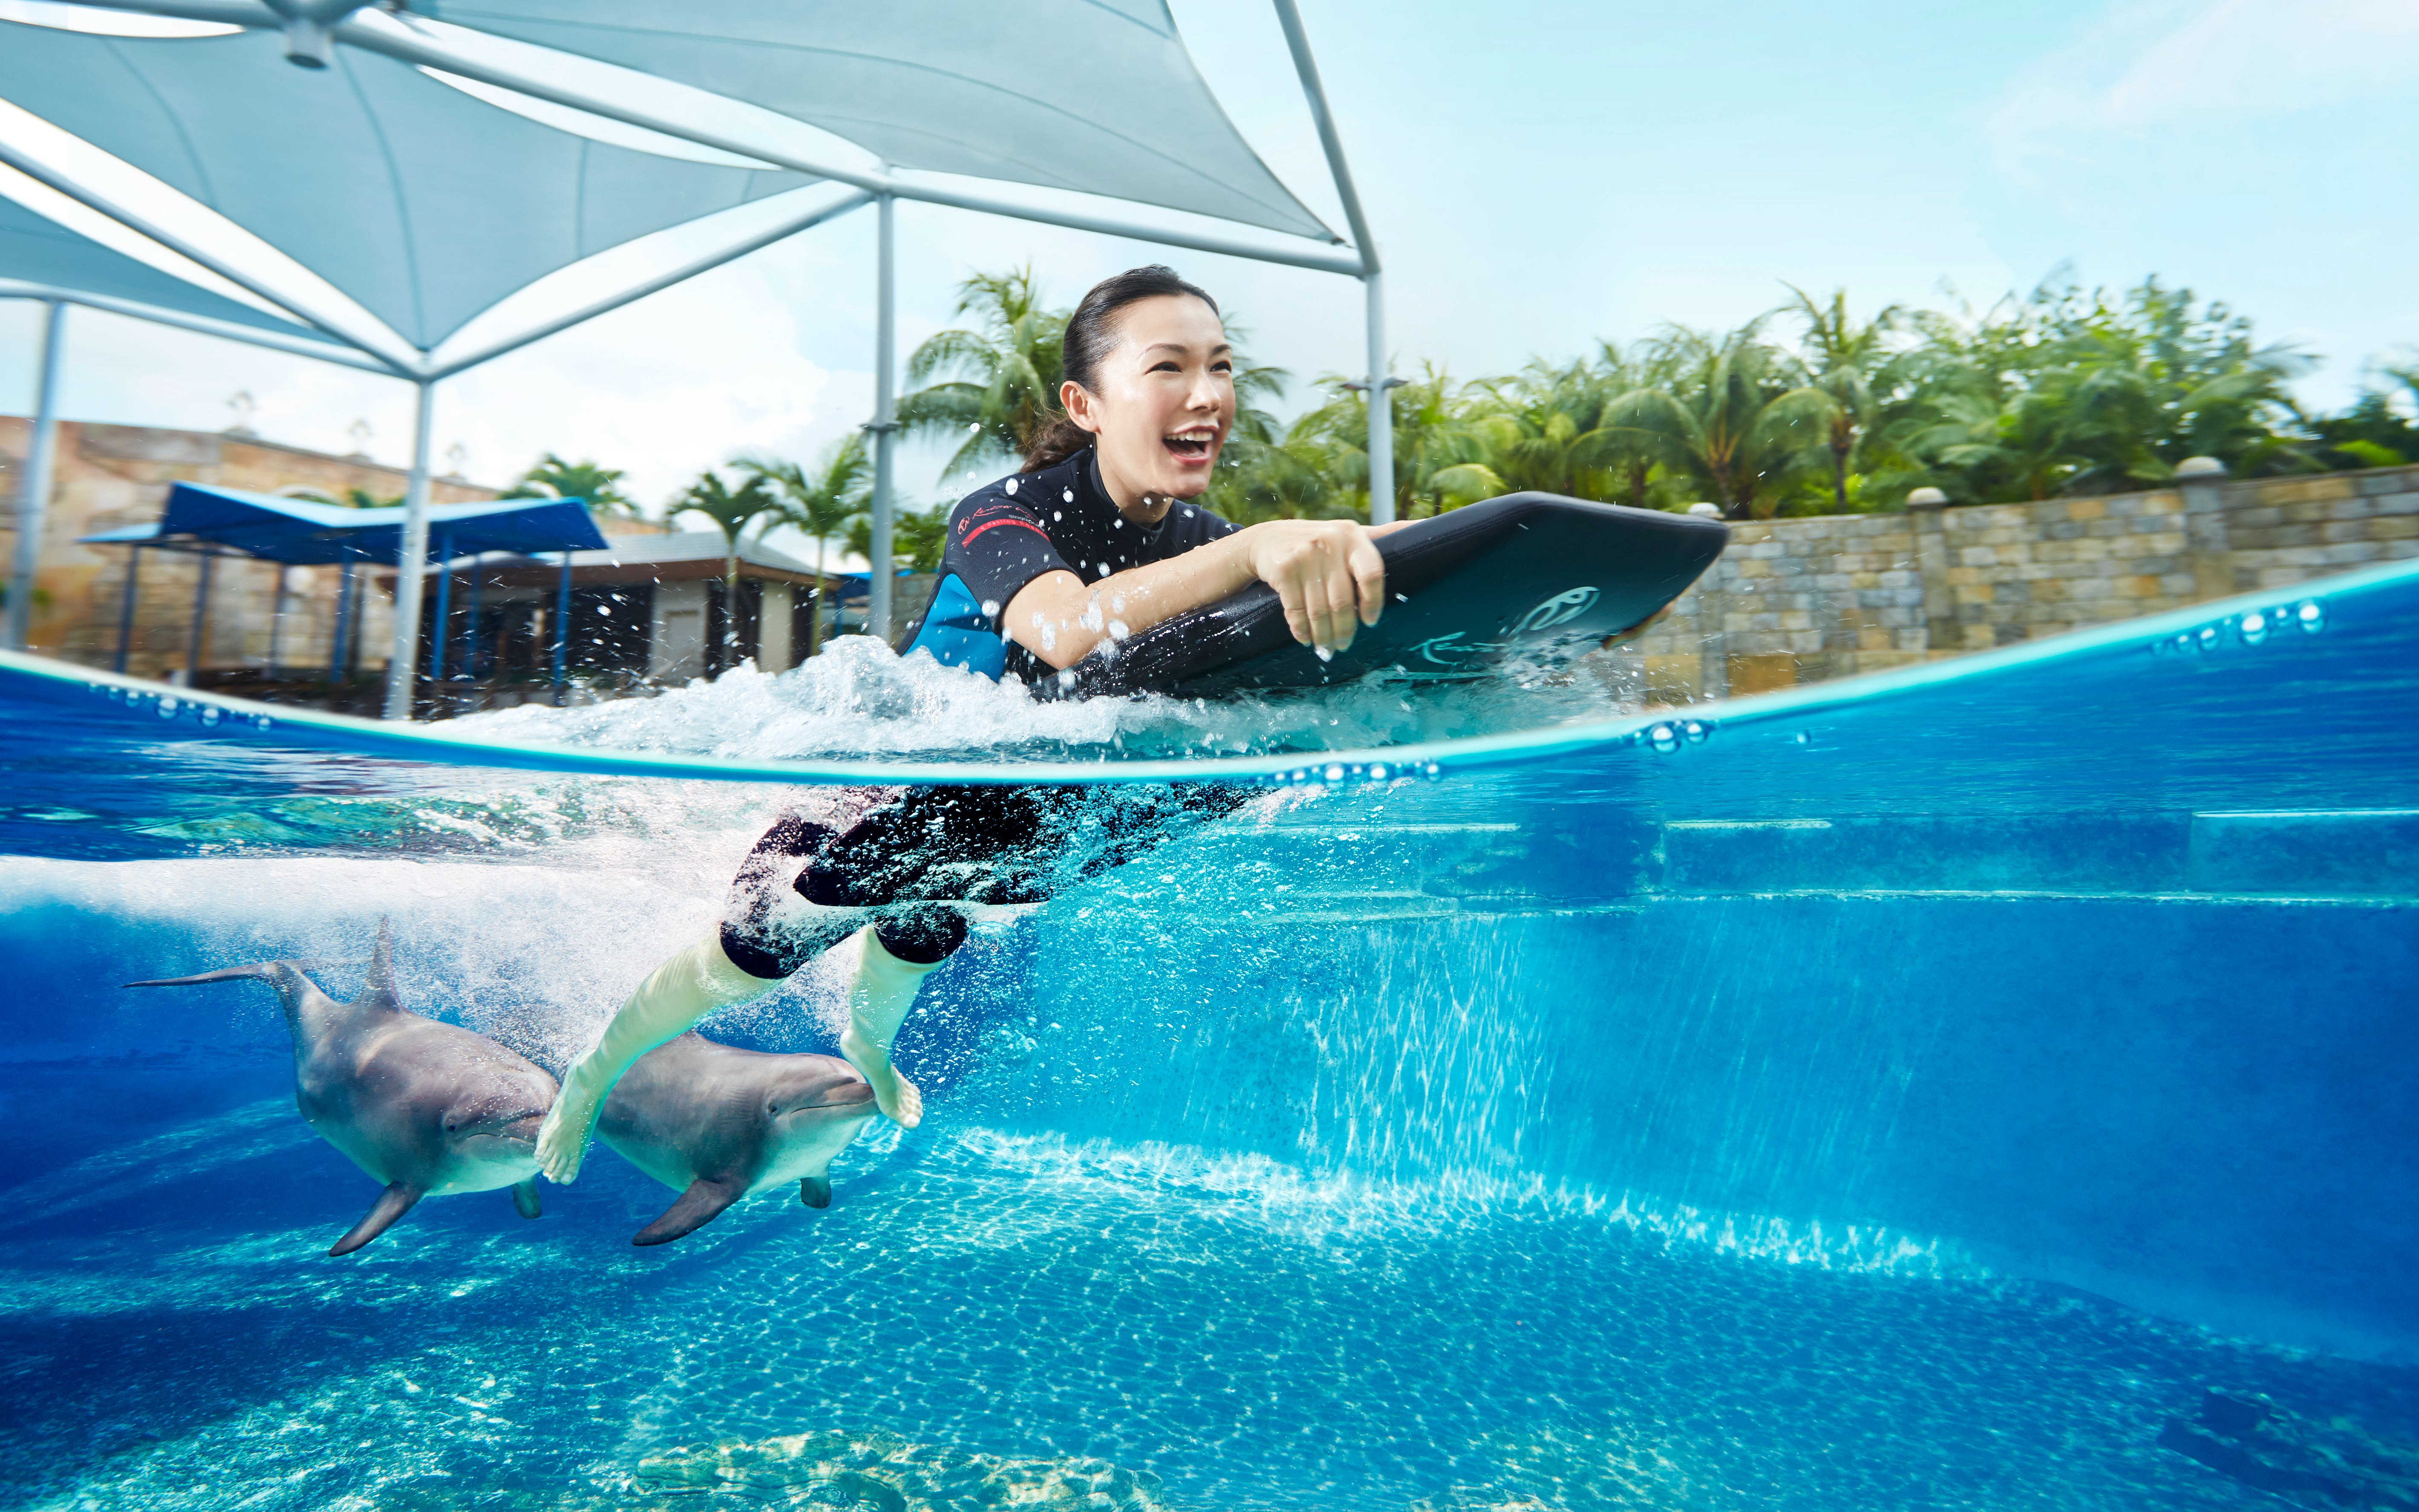 Dolphin Adventure Experience with Adventure Cove Waterpark Tickets